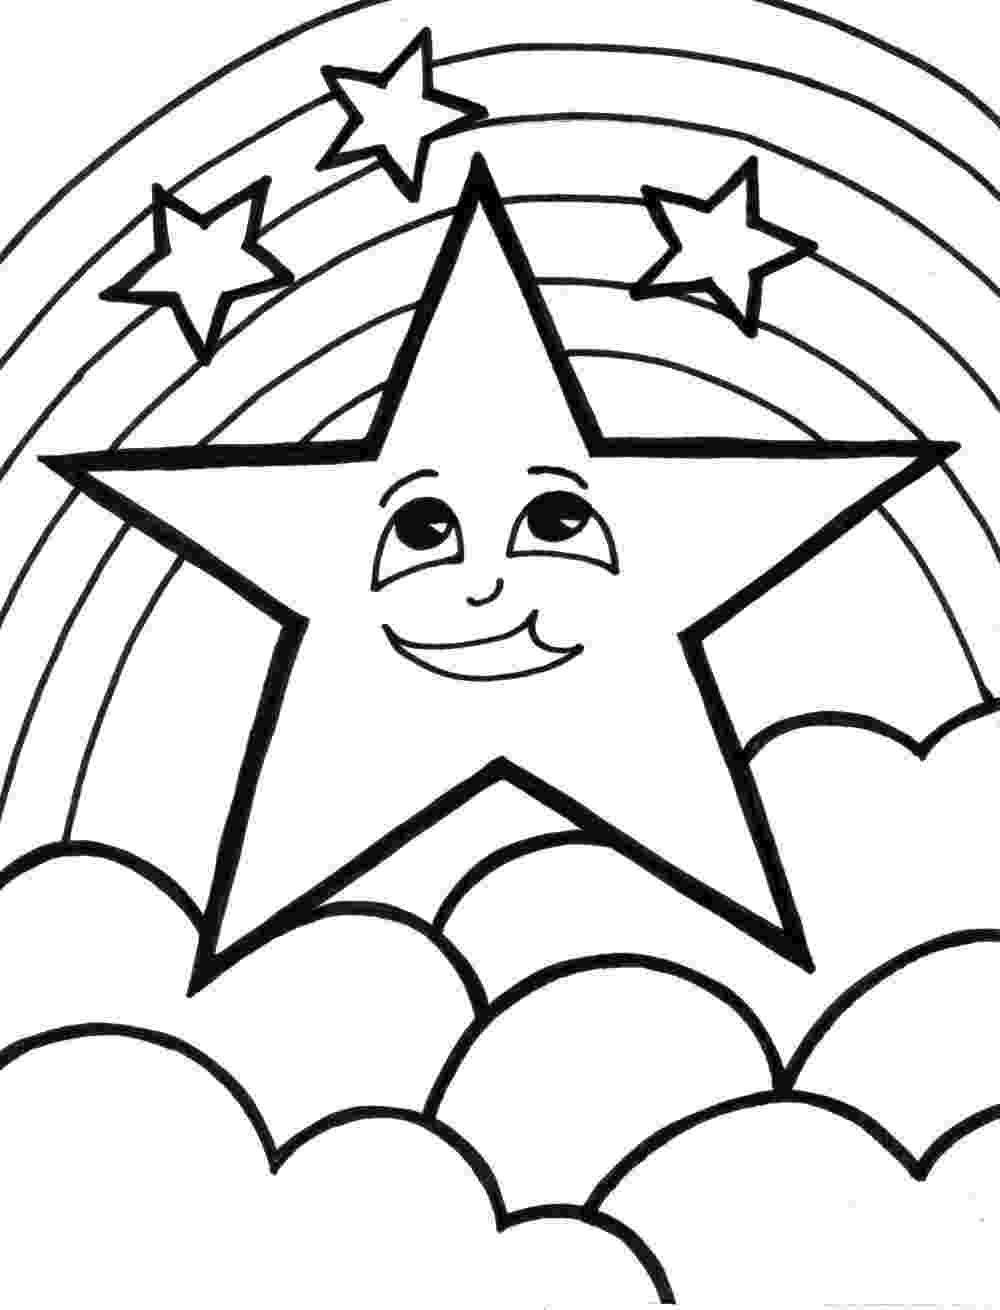 coloring stars free printable star coloring pages for kids stars coloring 1 2